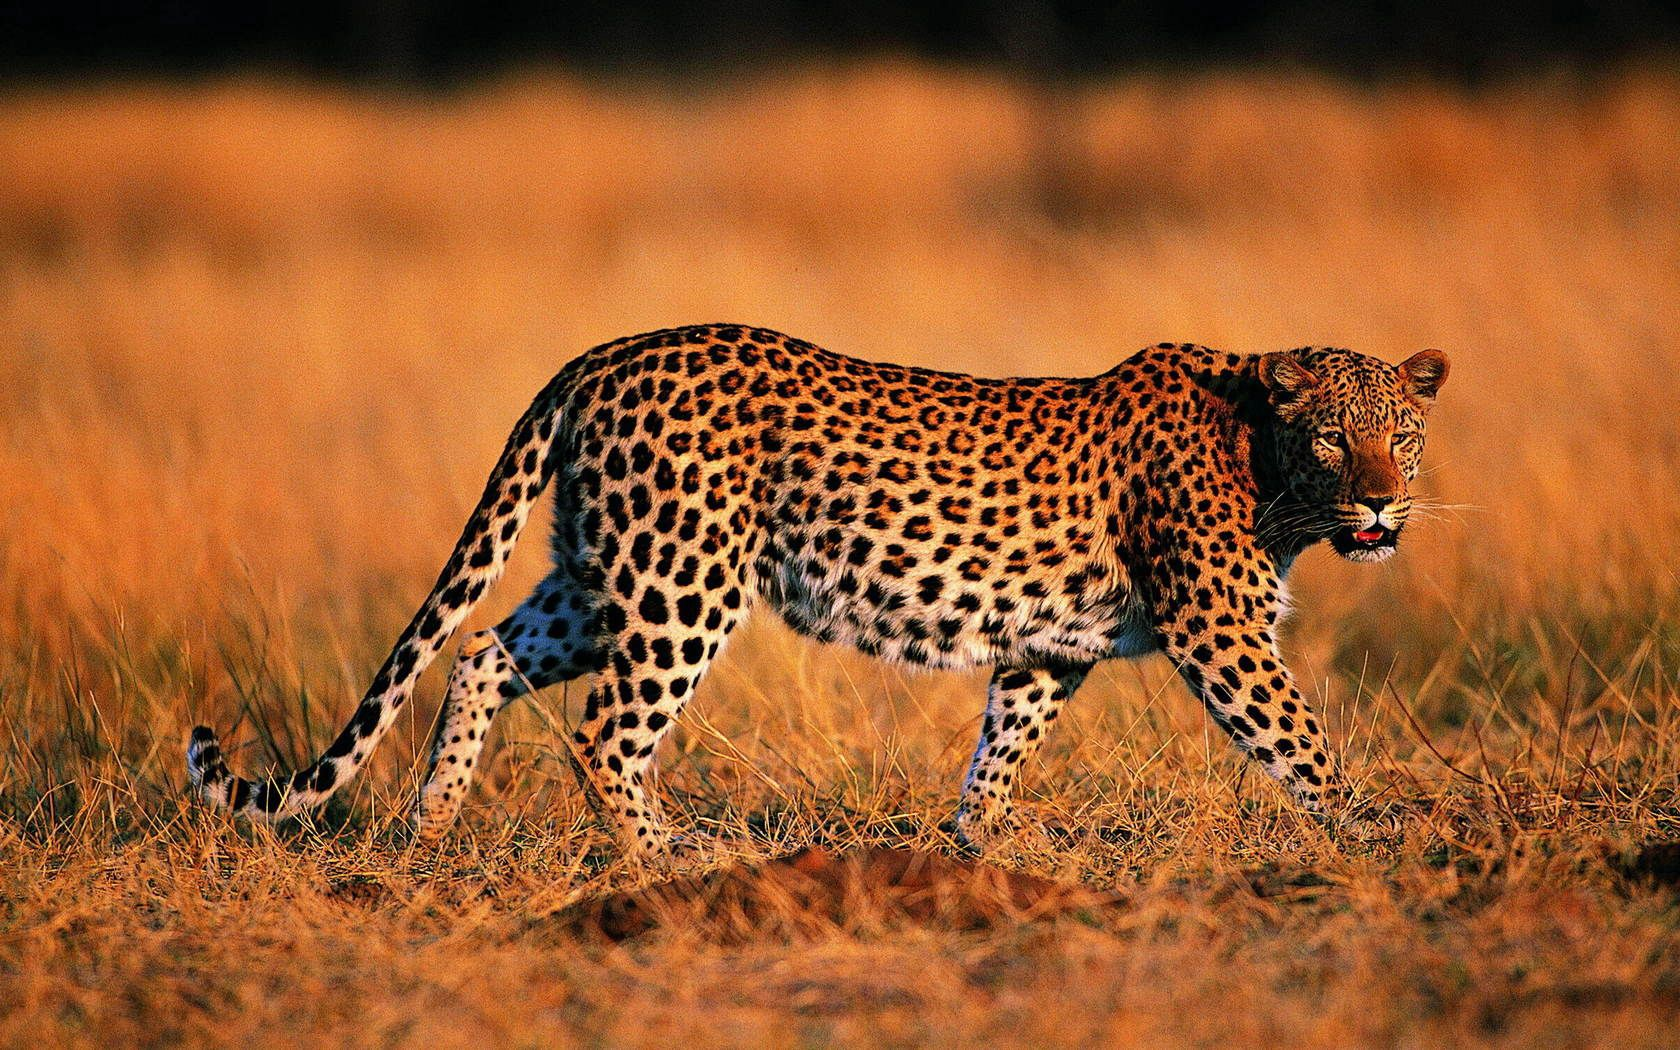 142209 download wallpaper Animals, Leopard, Stroll, Grass, Hunting, Hunt, Predator, Big Cat screensavers and pictures for free